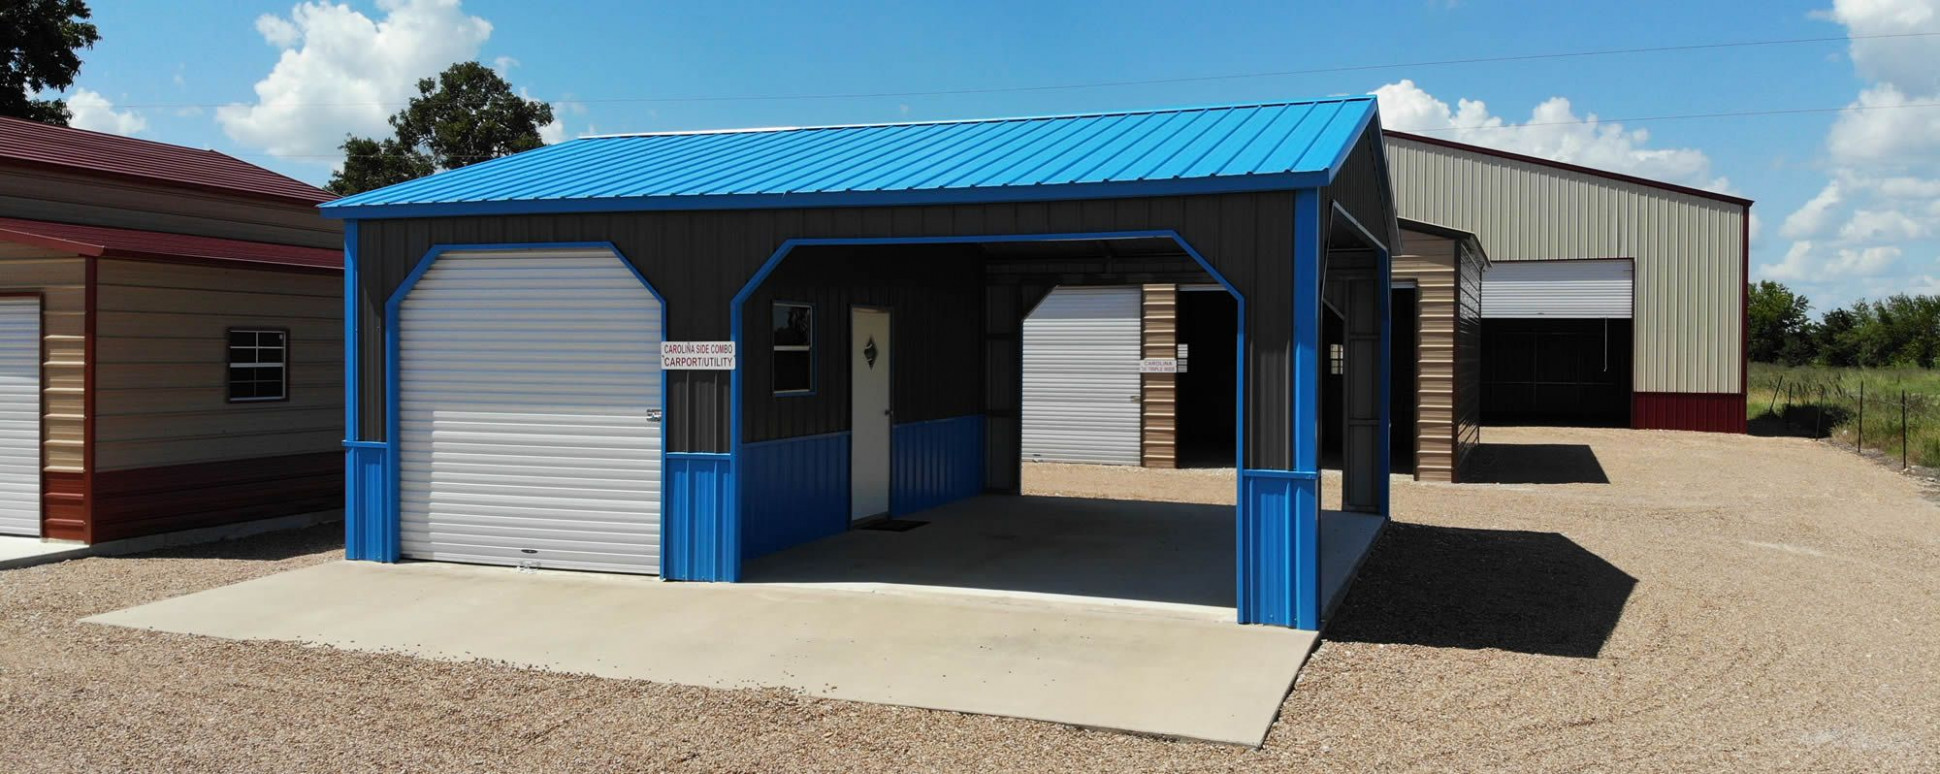 Carolina Carports Garage Utility Combo | Enterprise Center Carolina Carports Garage Packages